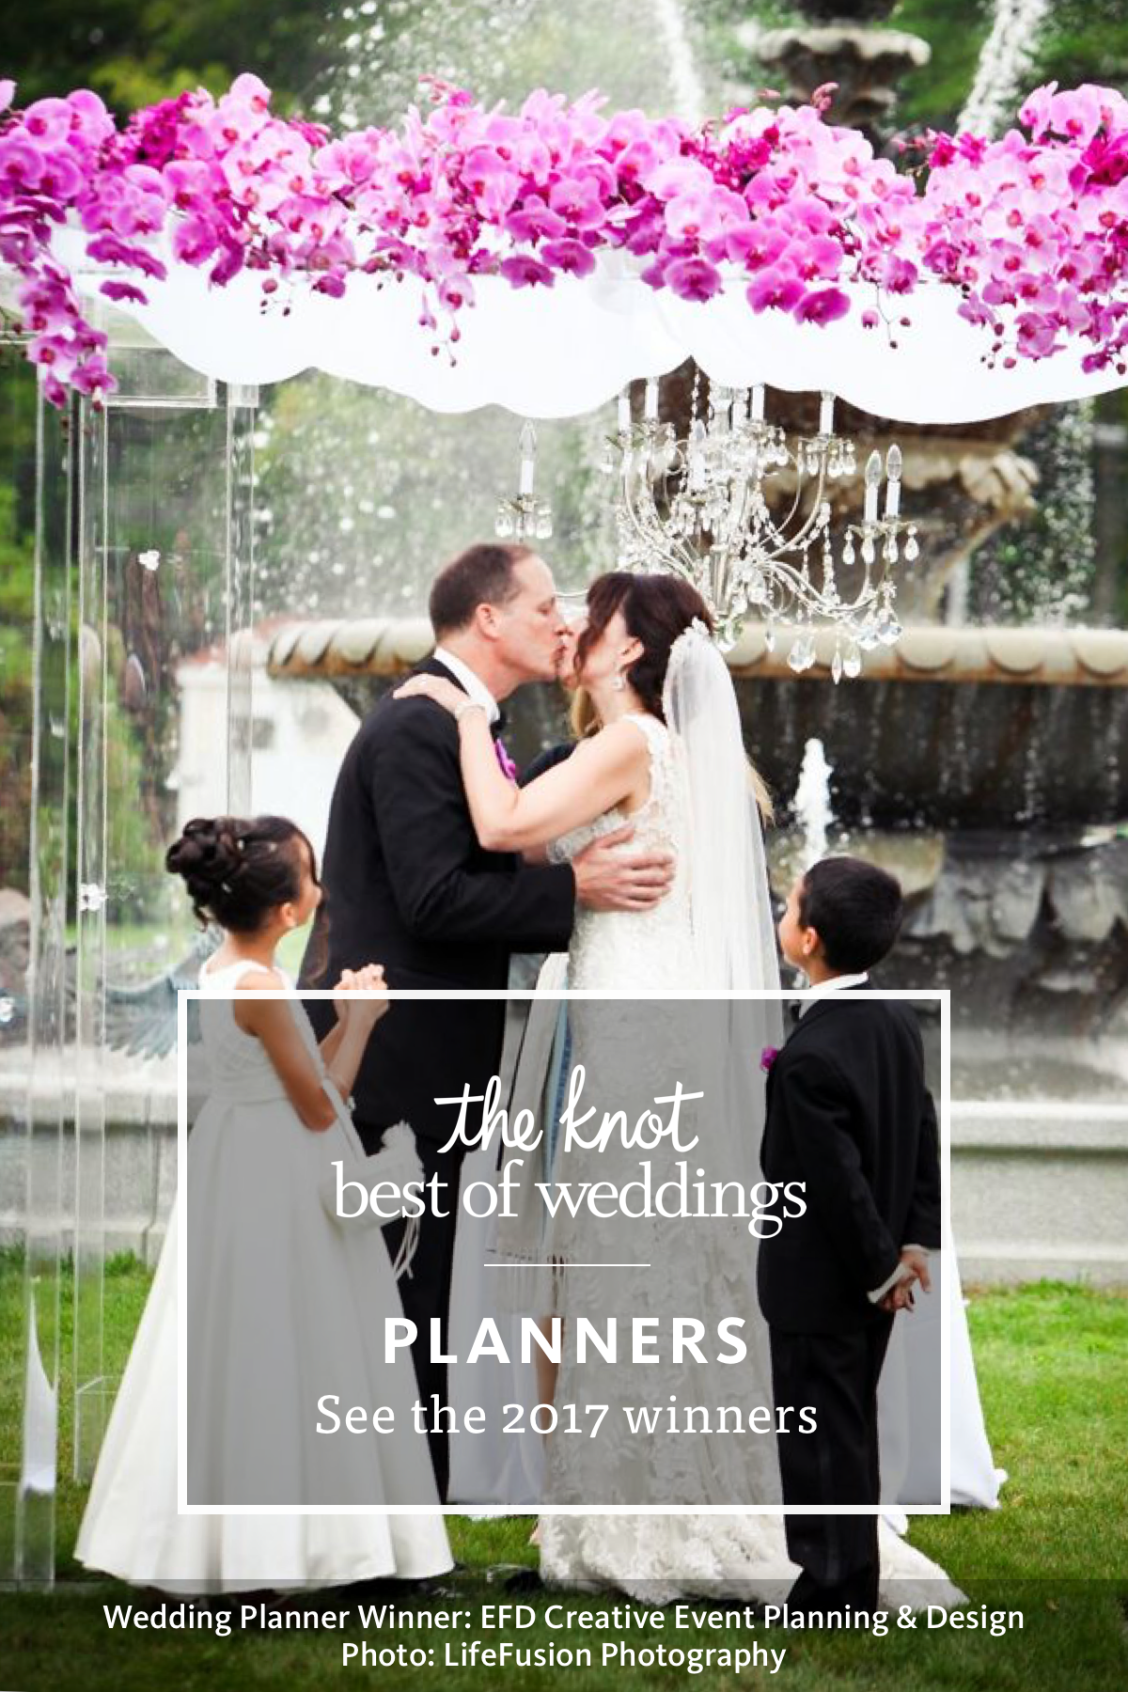 Wedding Planners In New York Ny Wedding Planner Job Wedding Planner Best Wedding Planner